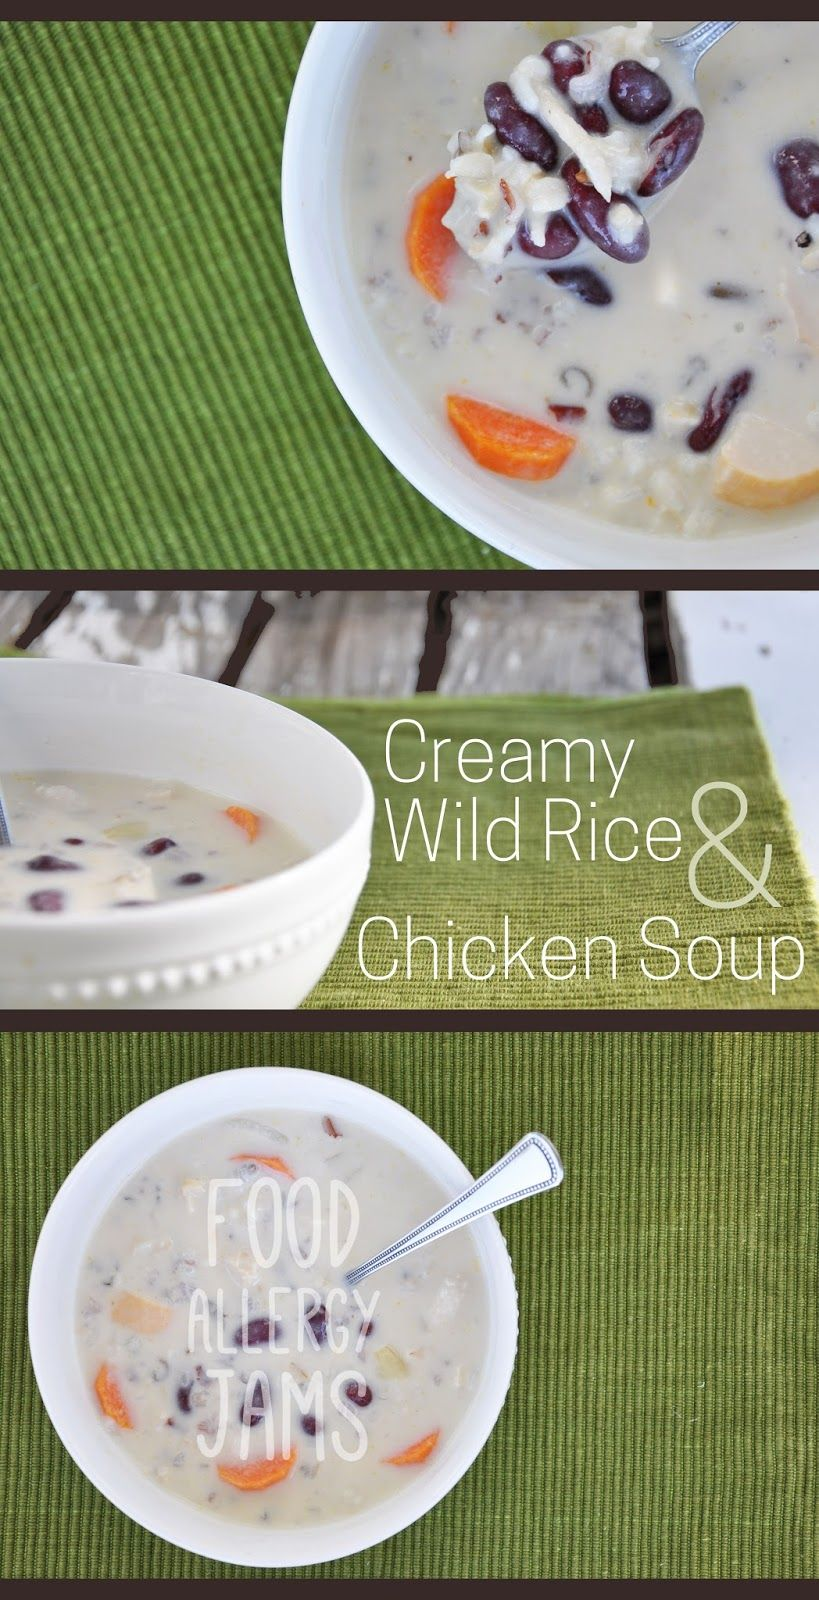 Food allergy jams enjoy life flour creamy wild rice and chicken food allergy jams enjoy life flour creamy wild rice and chicken soup tothefullest forumfinder Image collections